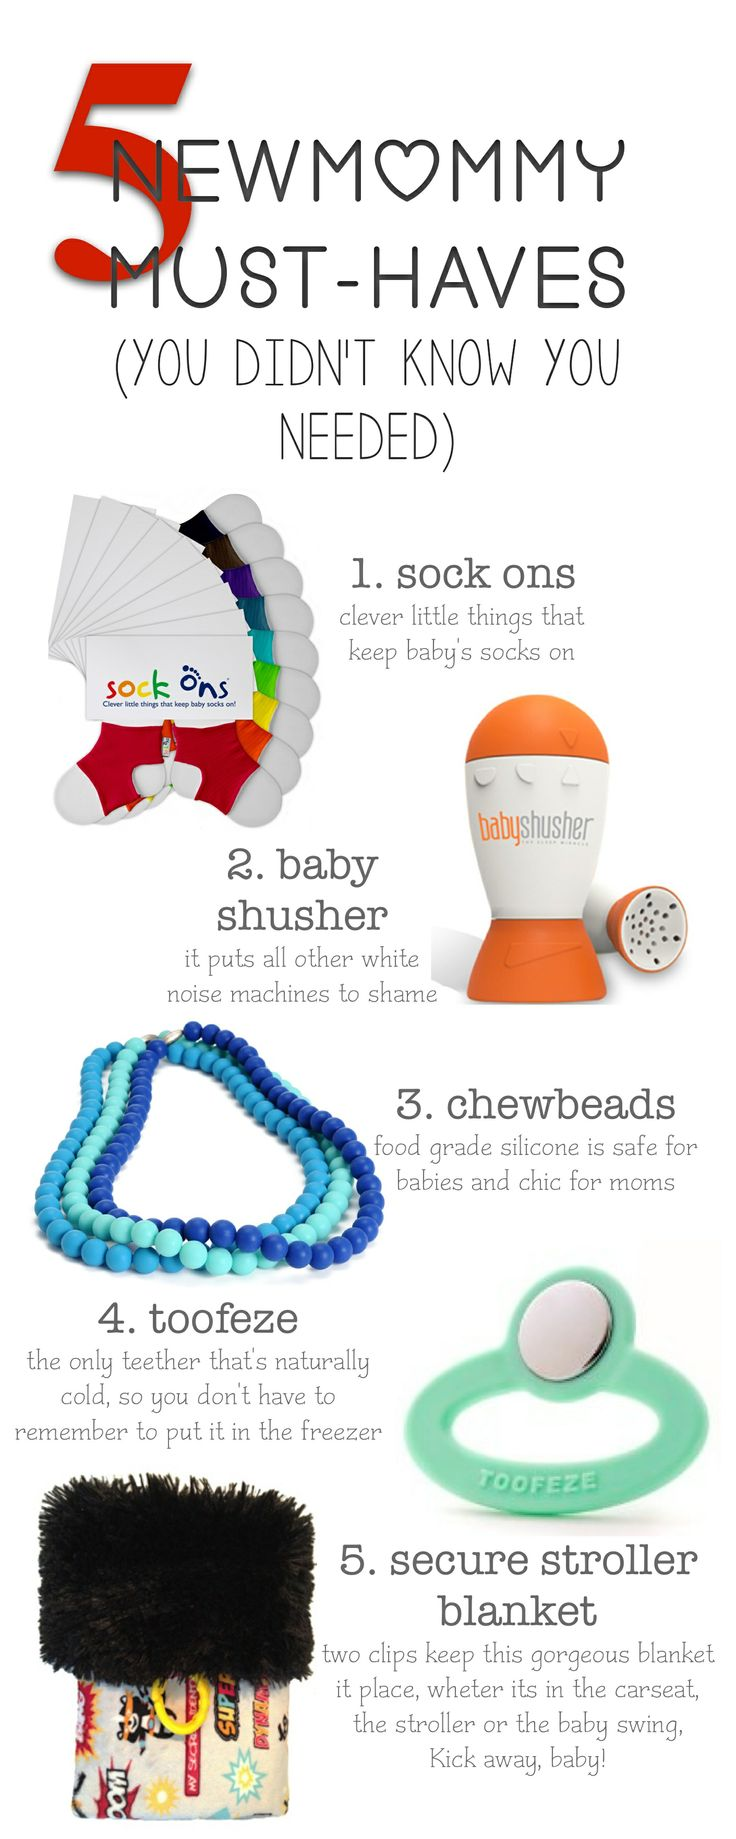 11 best products we love images on pinterest babies baby baby and 5 items every new mom doesnt know she needs click here to learn ccuart Images